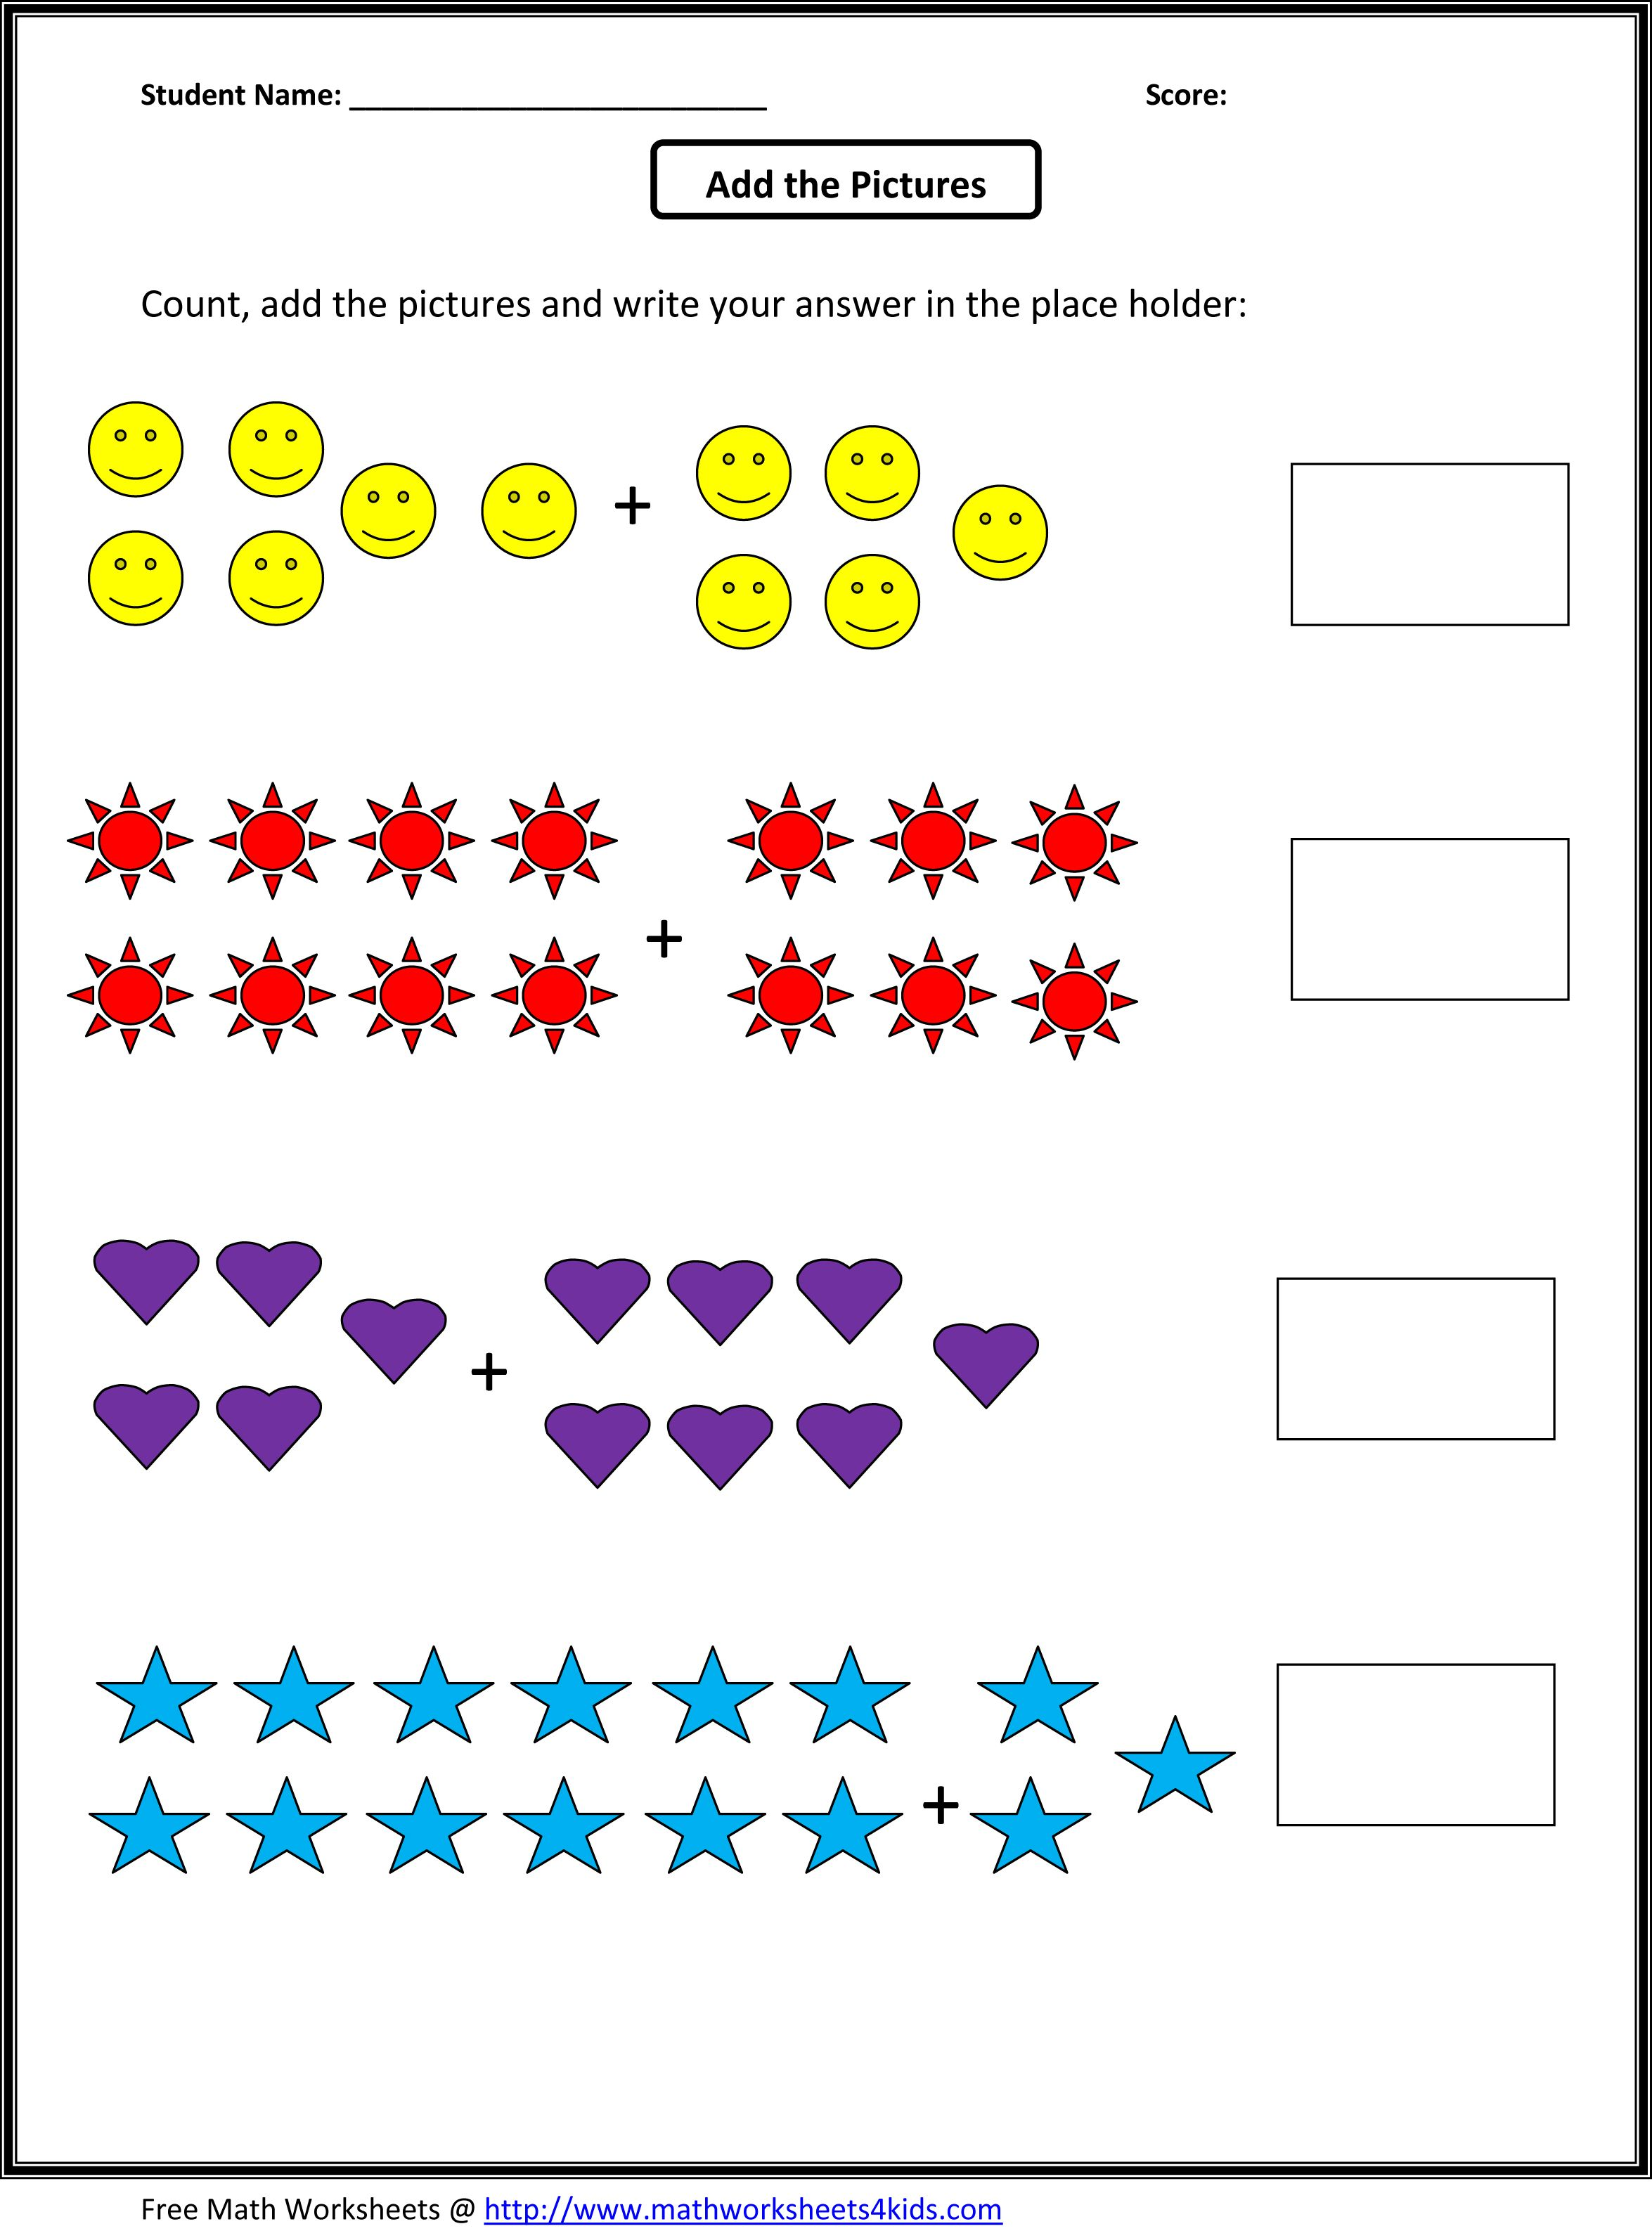 Grade 1 Addition Math Worksheets First Grade Math Worksheets First Grade Math Worksheets Free Math Worksheets Math Worksheets